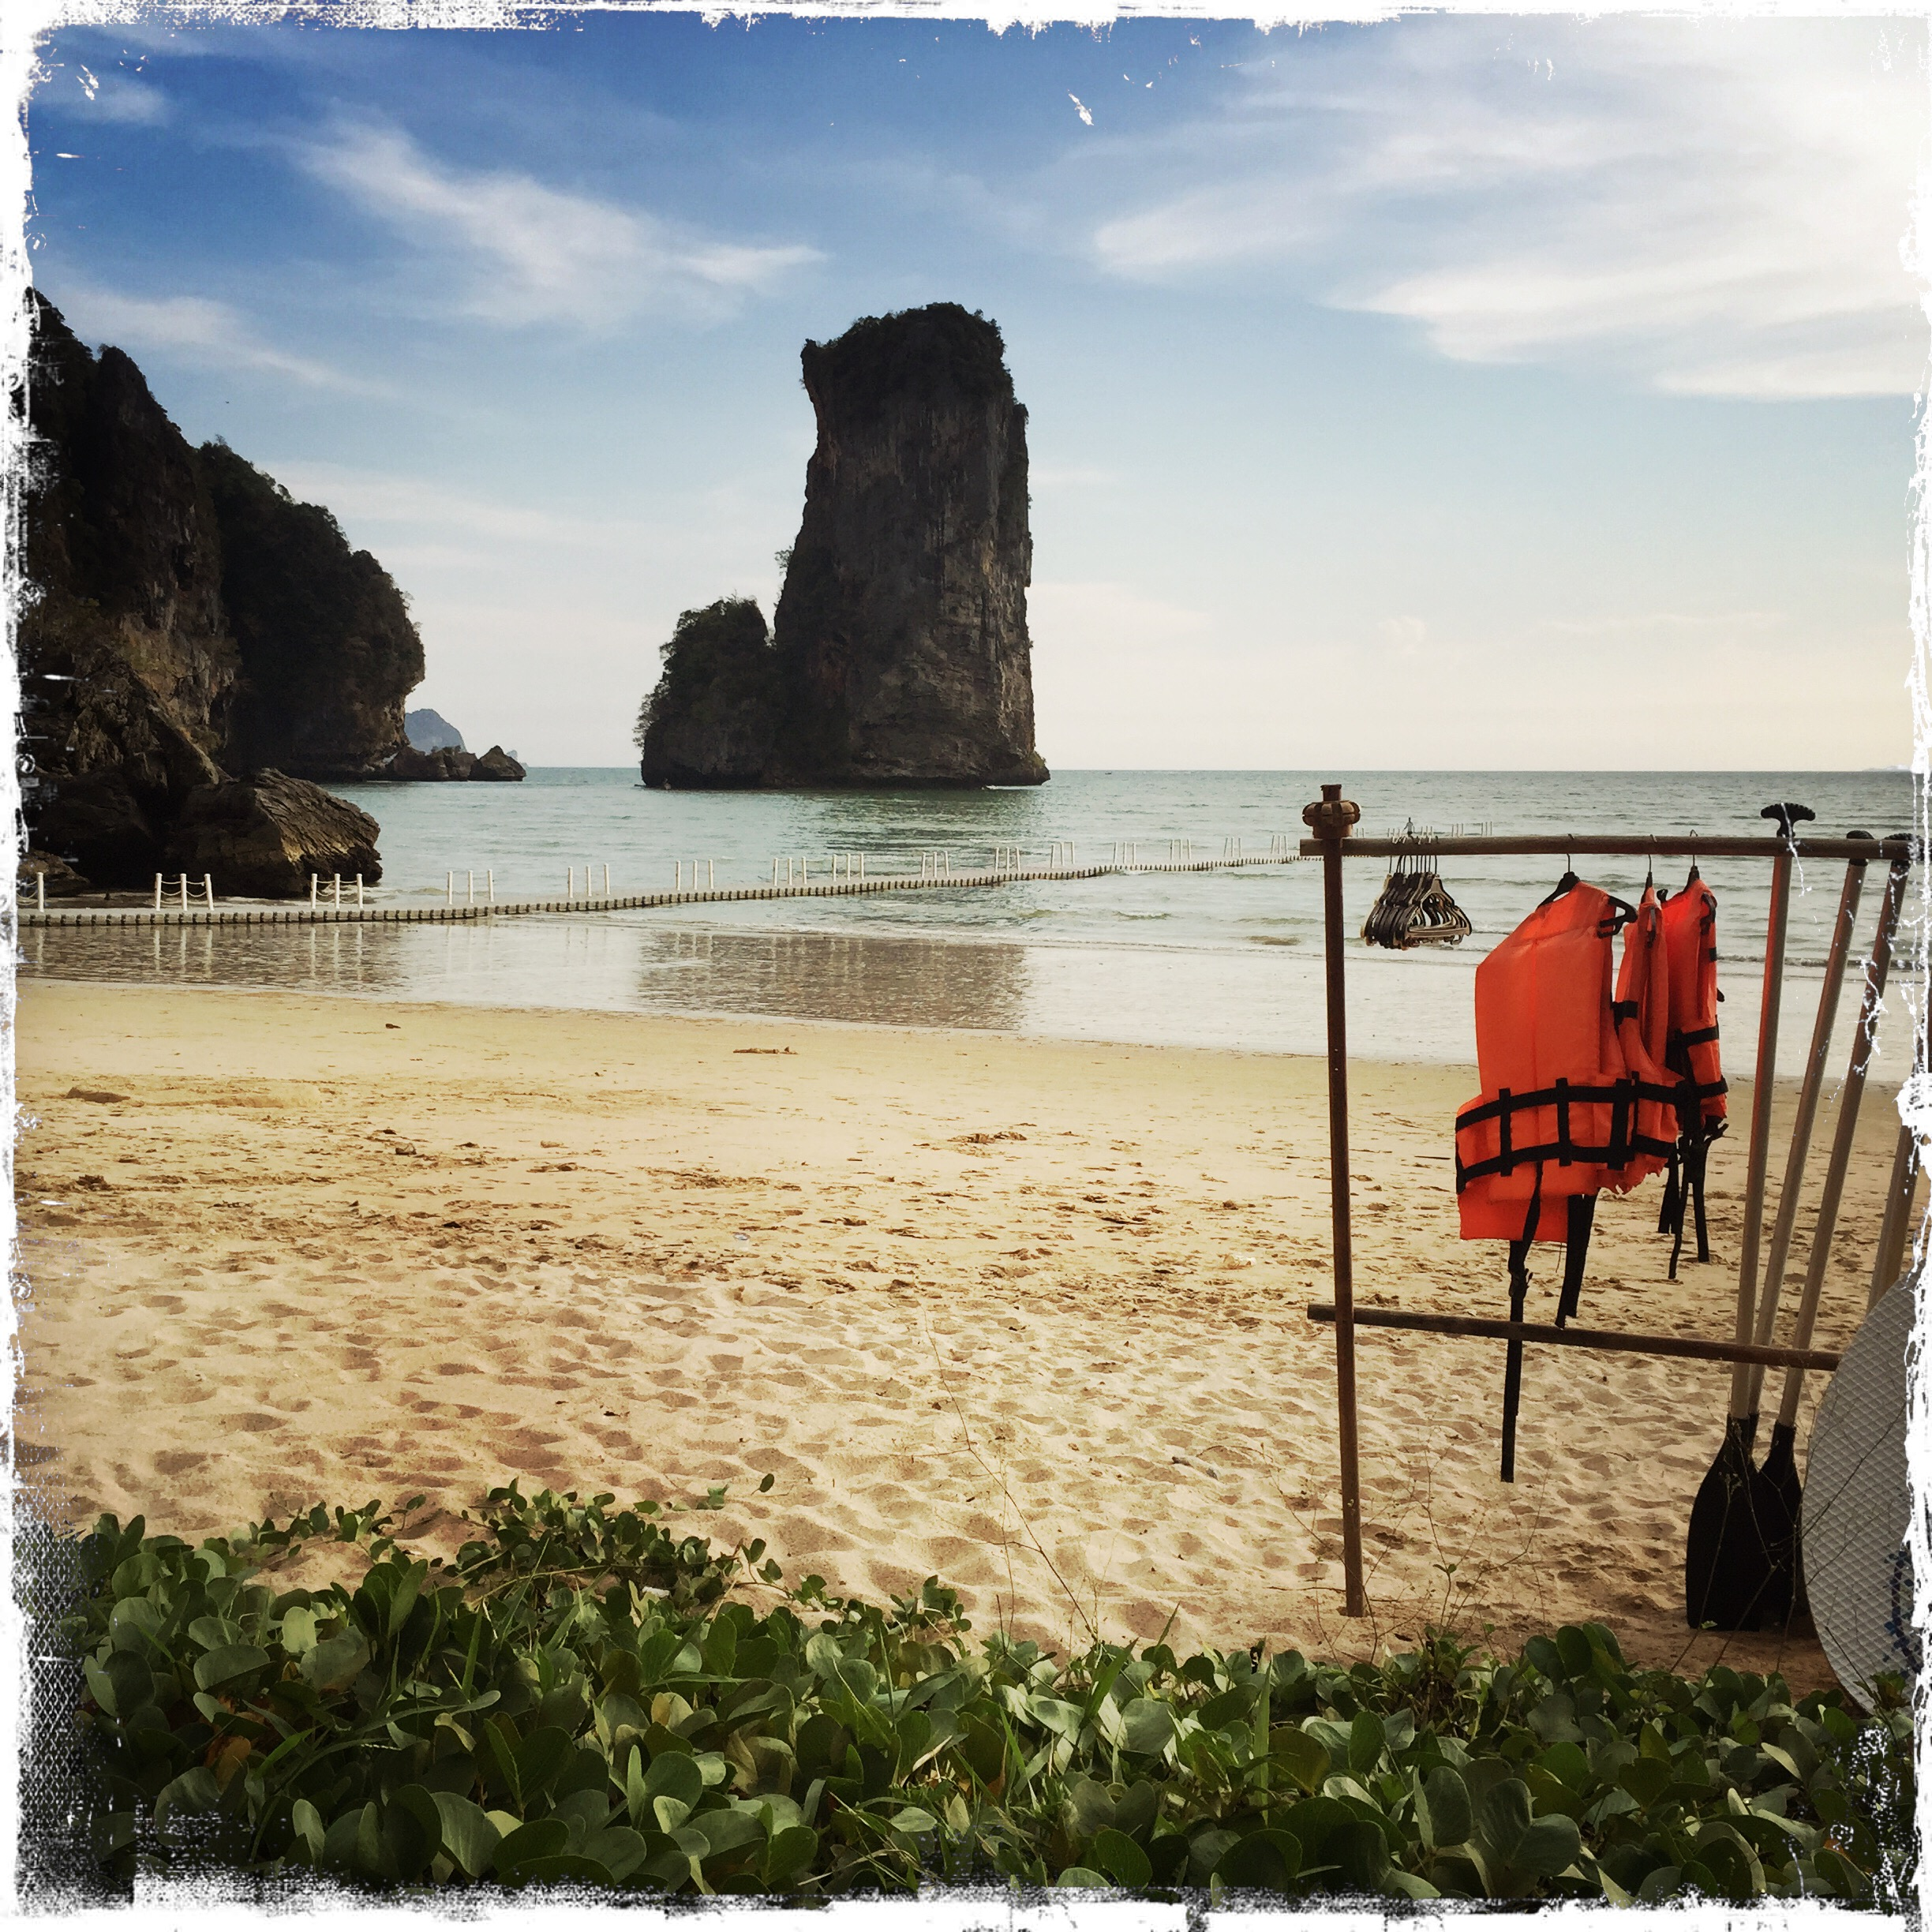 Krabi: the heaven on earth